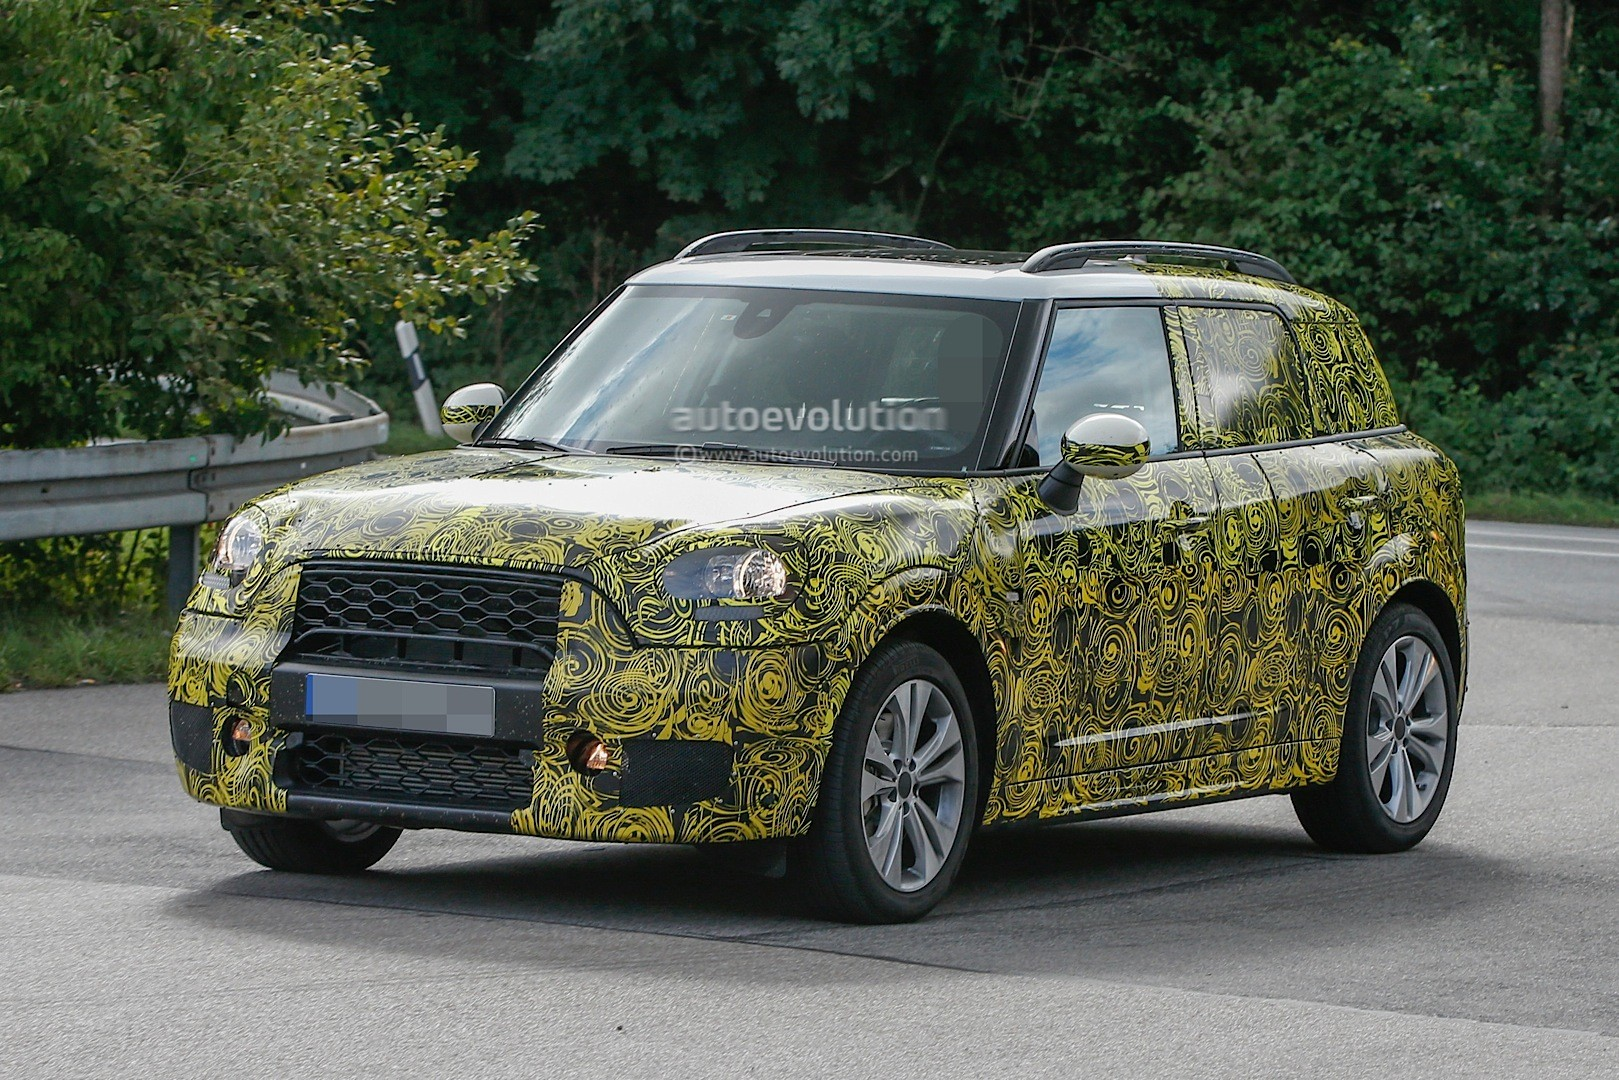 spyshots 2017 mini countryman disguise thins out shows unconventional design autoevolution. Black Bedroom Furniture Sets. Home Design Ideas